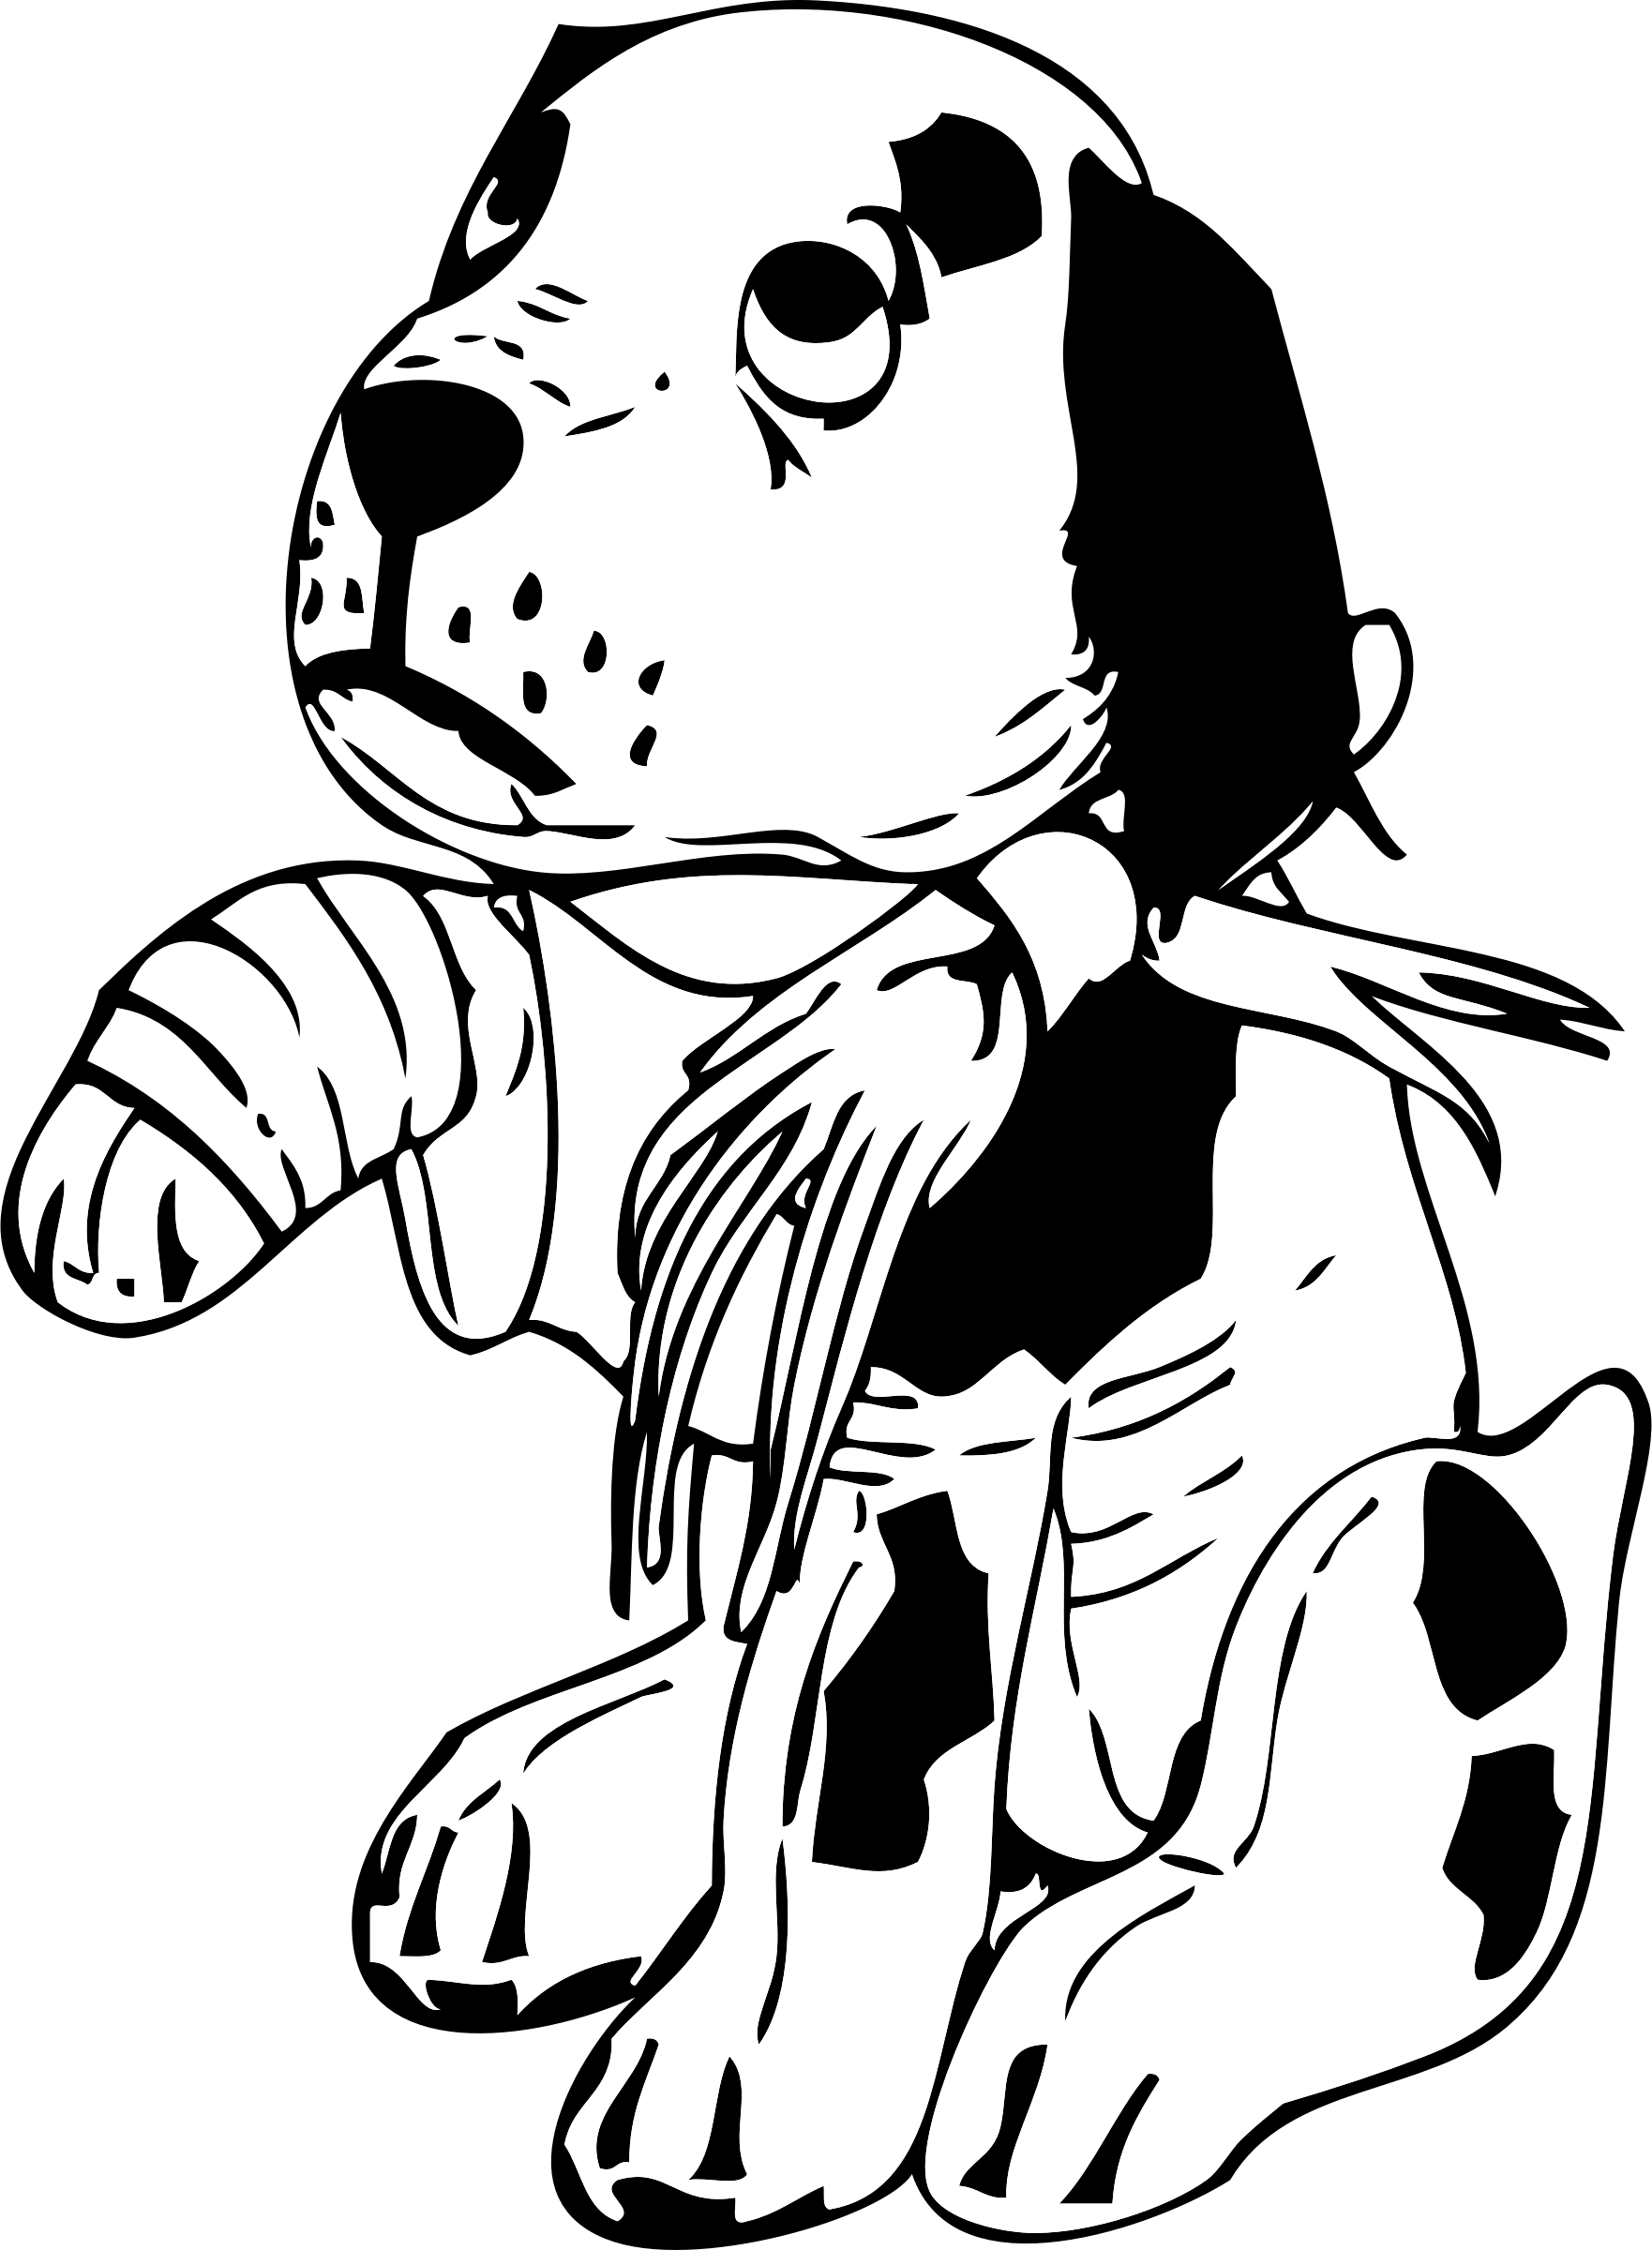 Sad dog with a. Legs clipart black and white